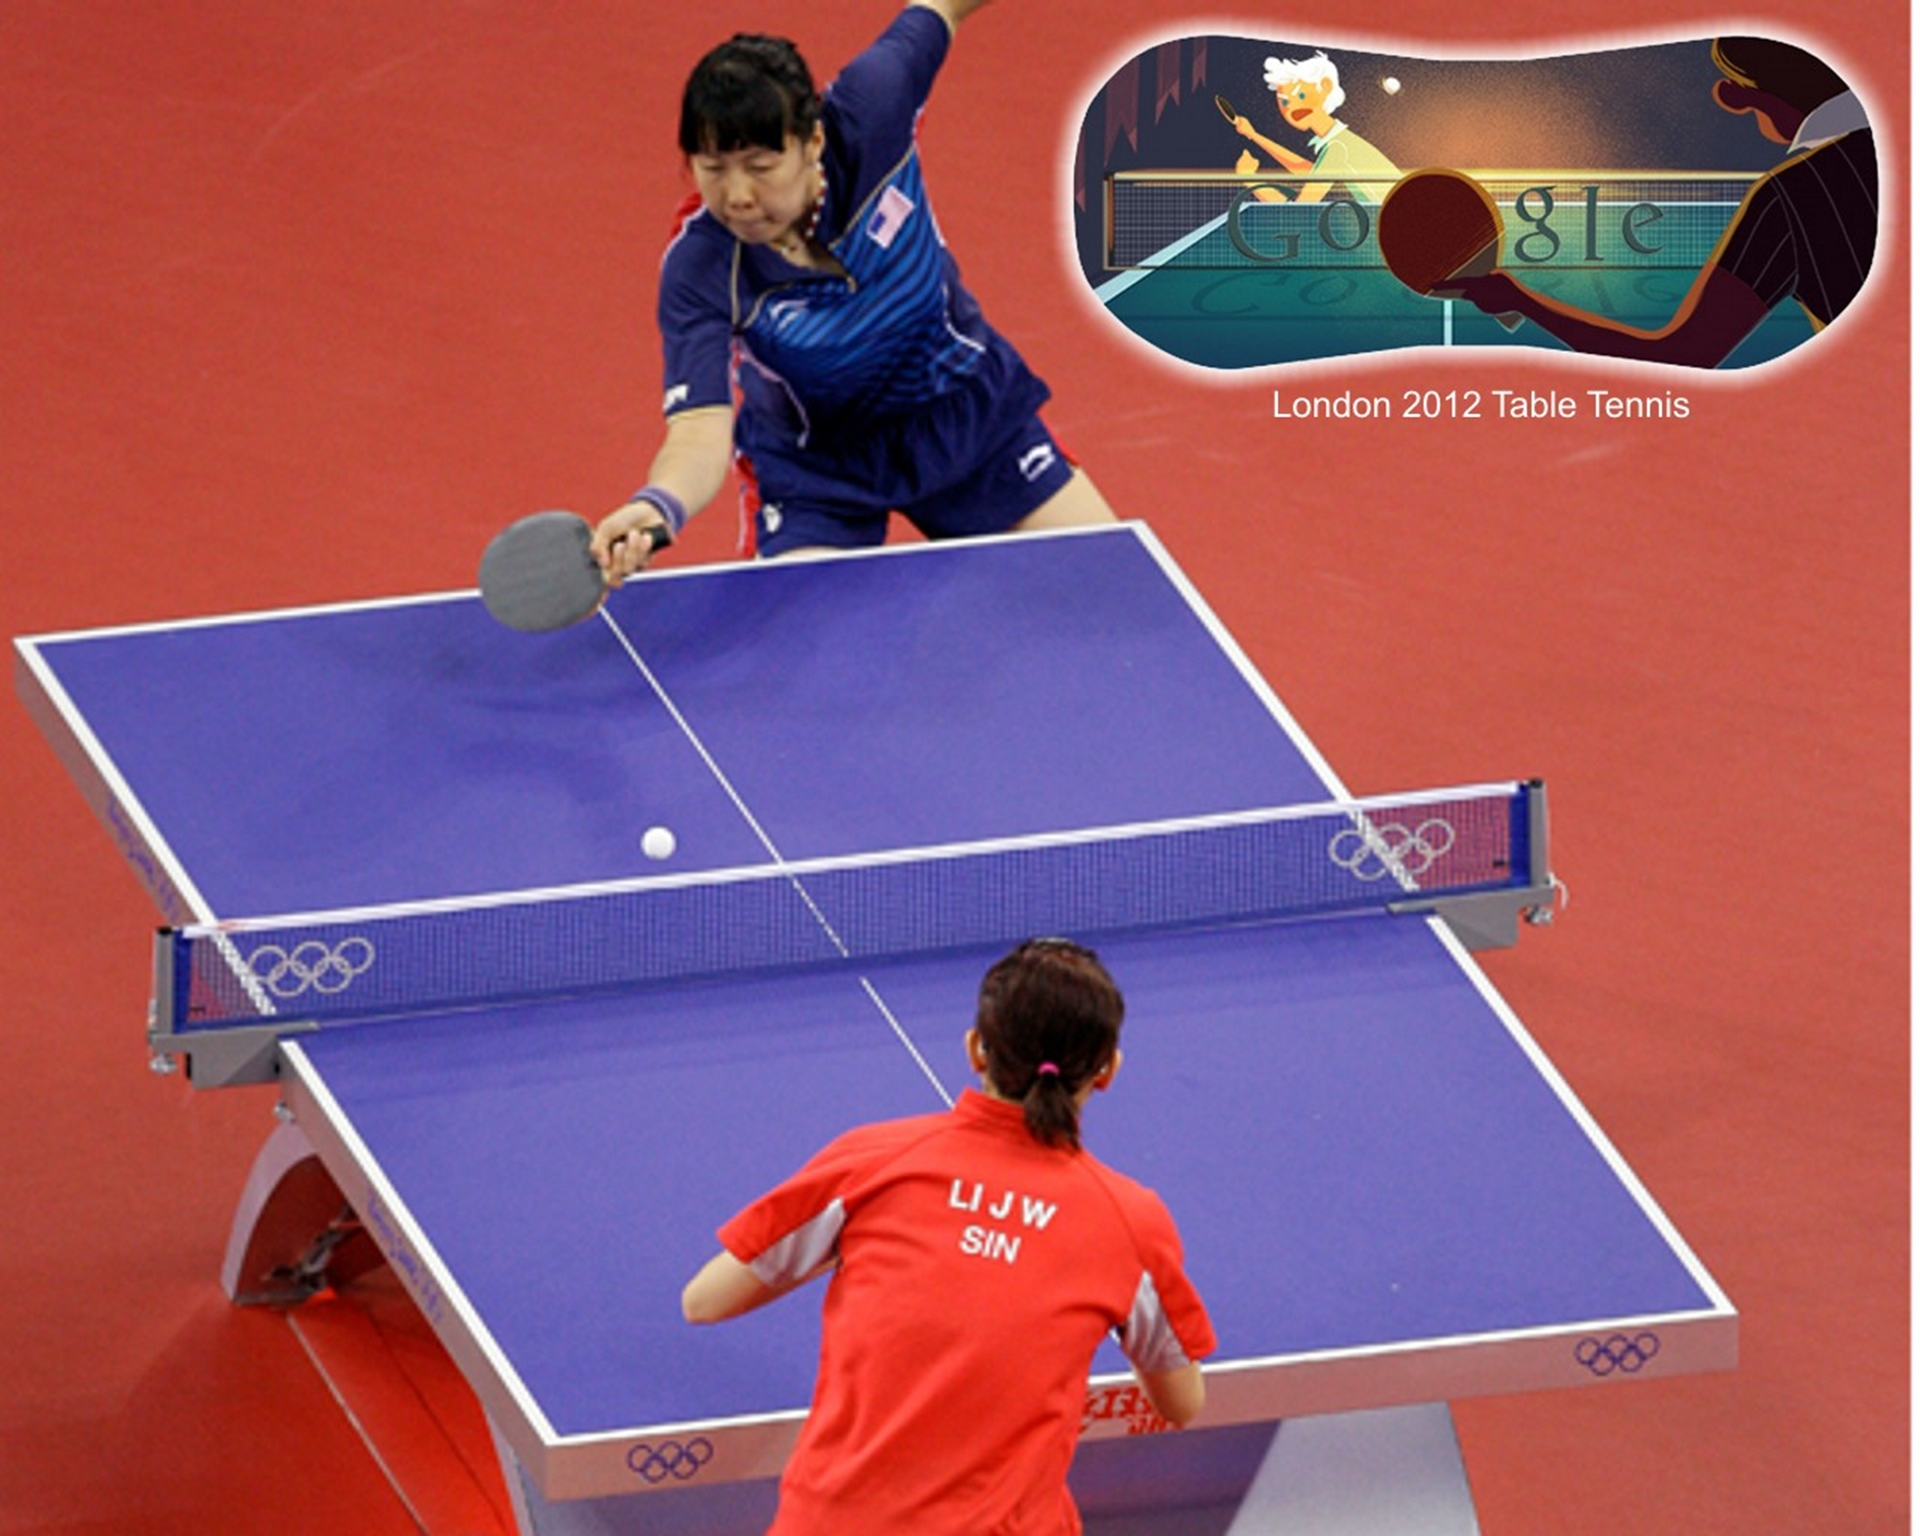 London 2012 table tennis